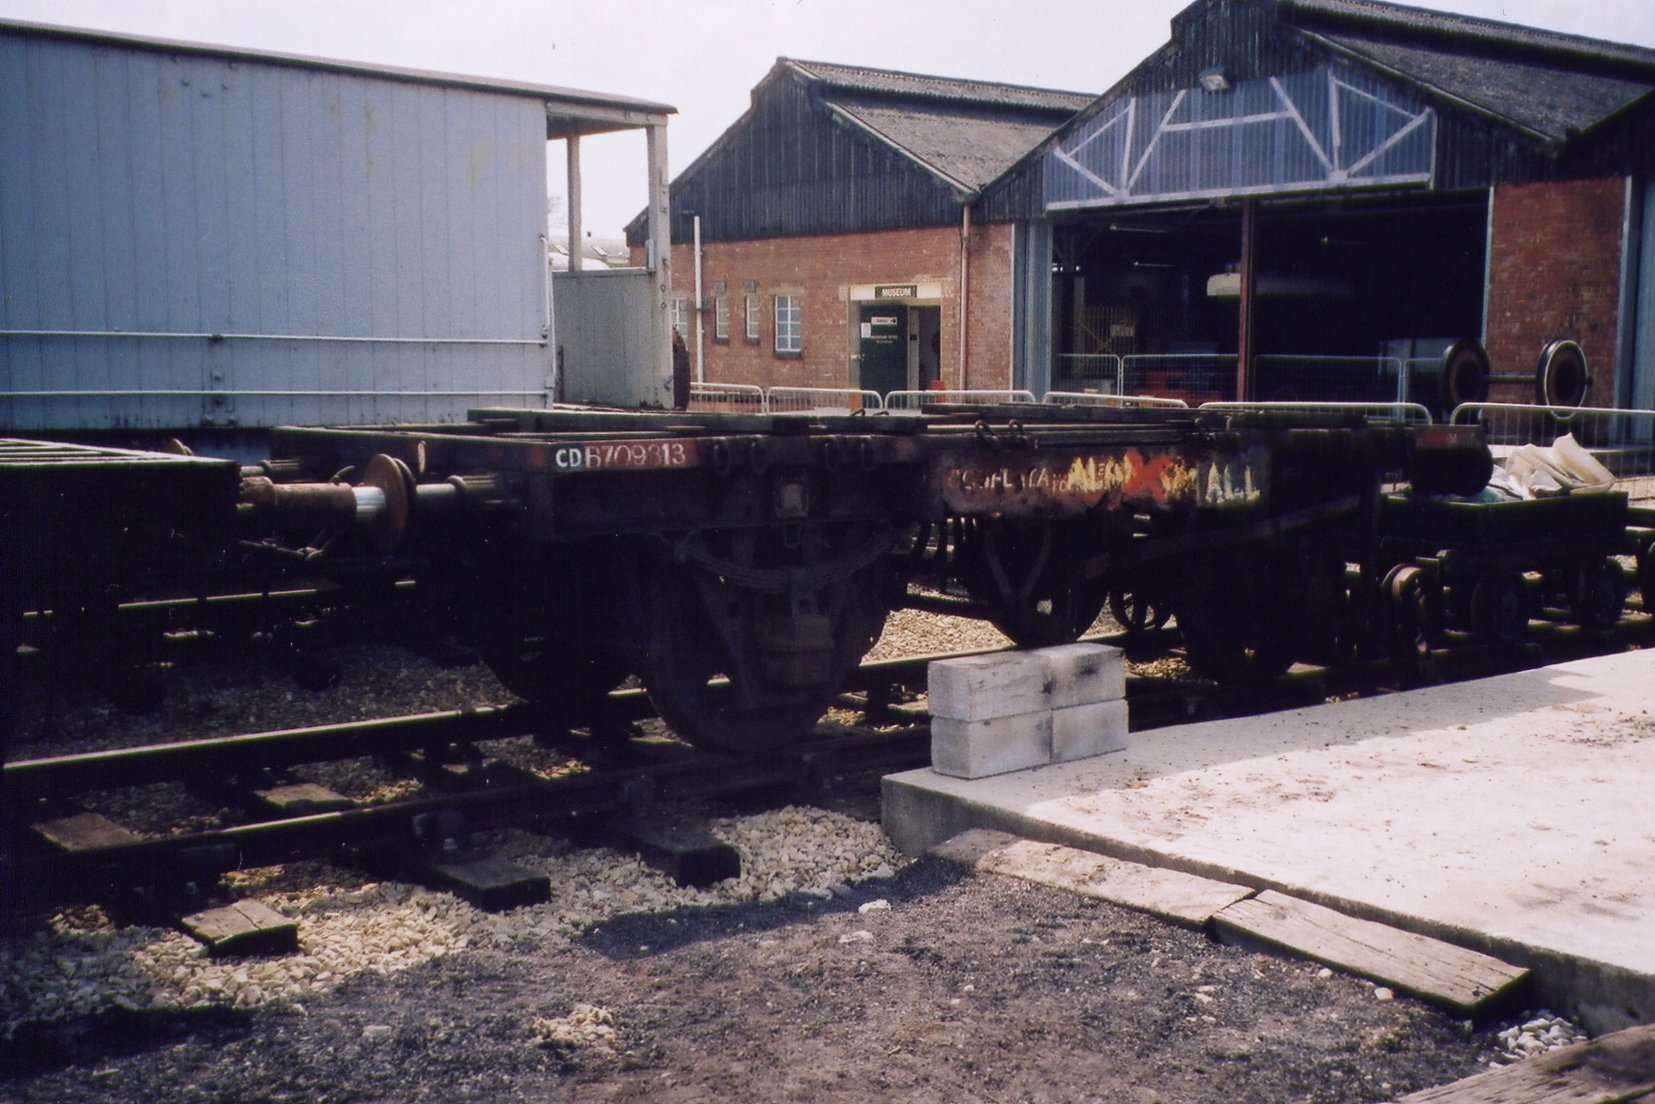 Conflat B709313 in Down Yard